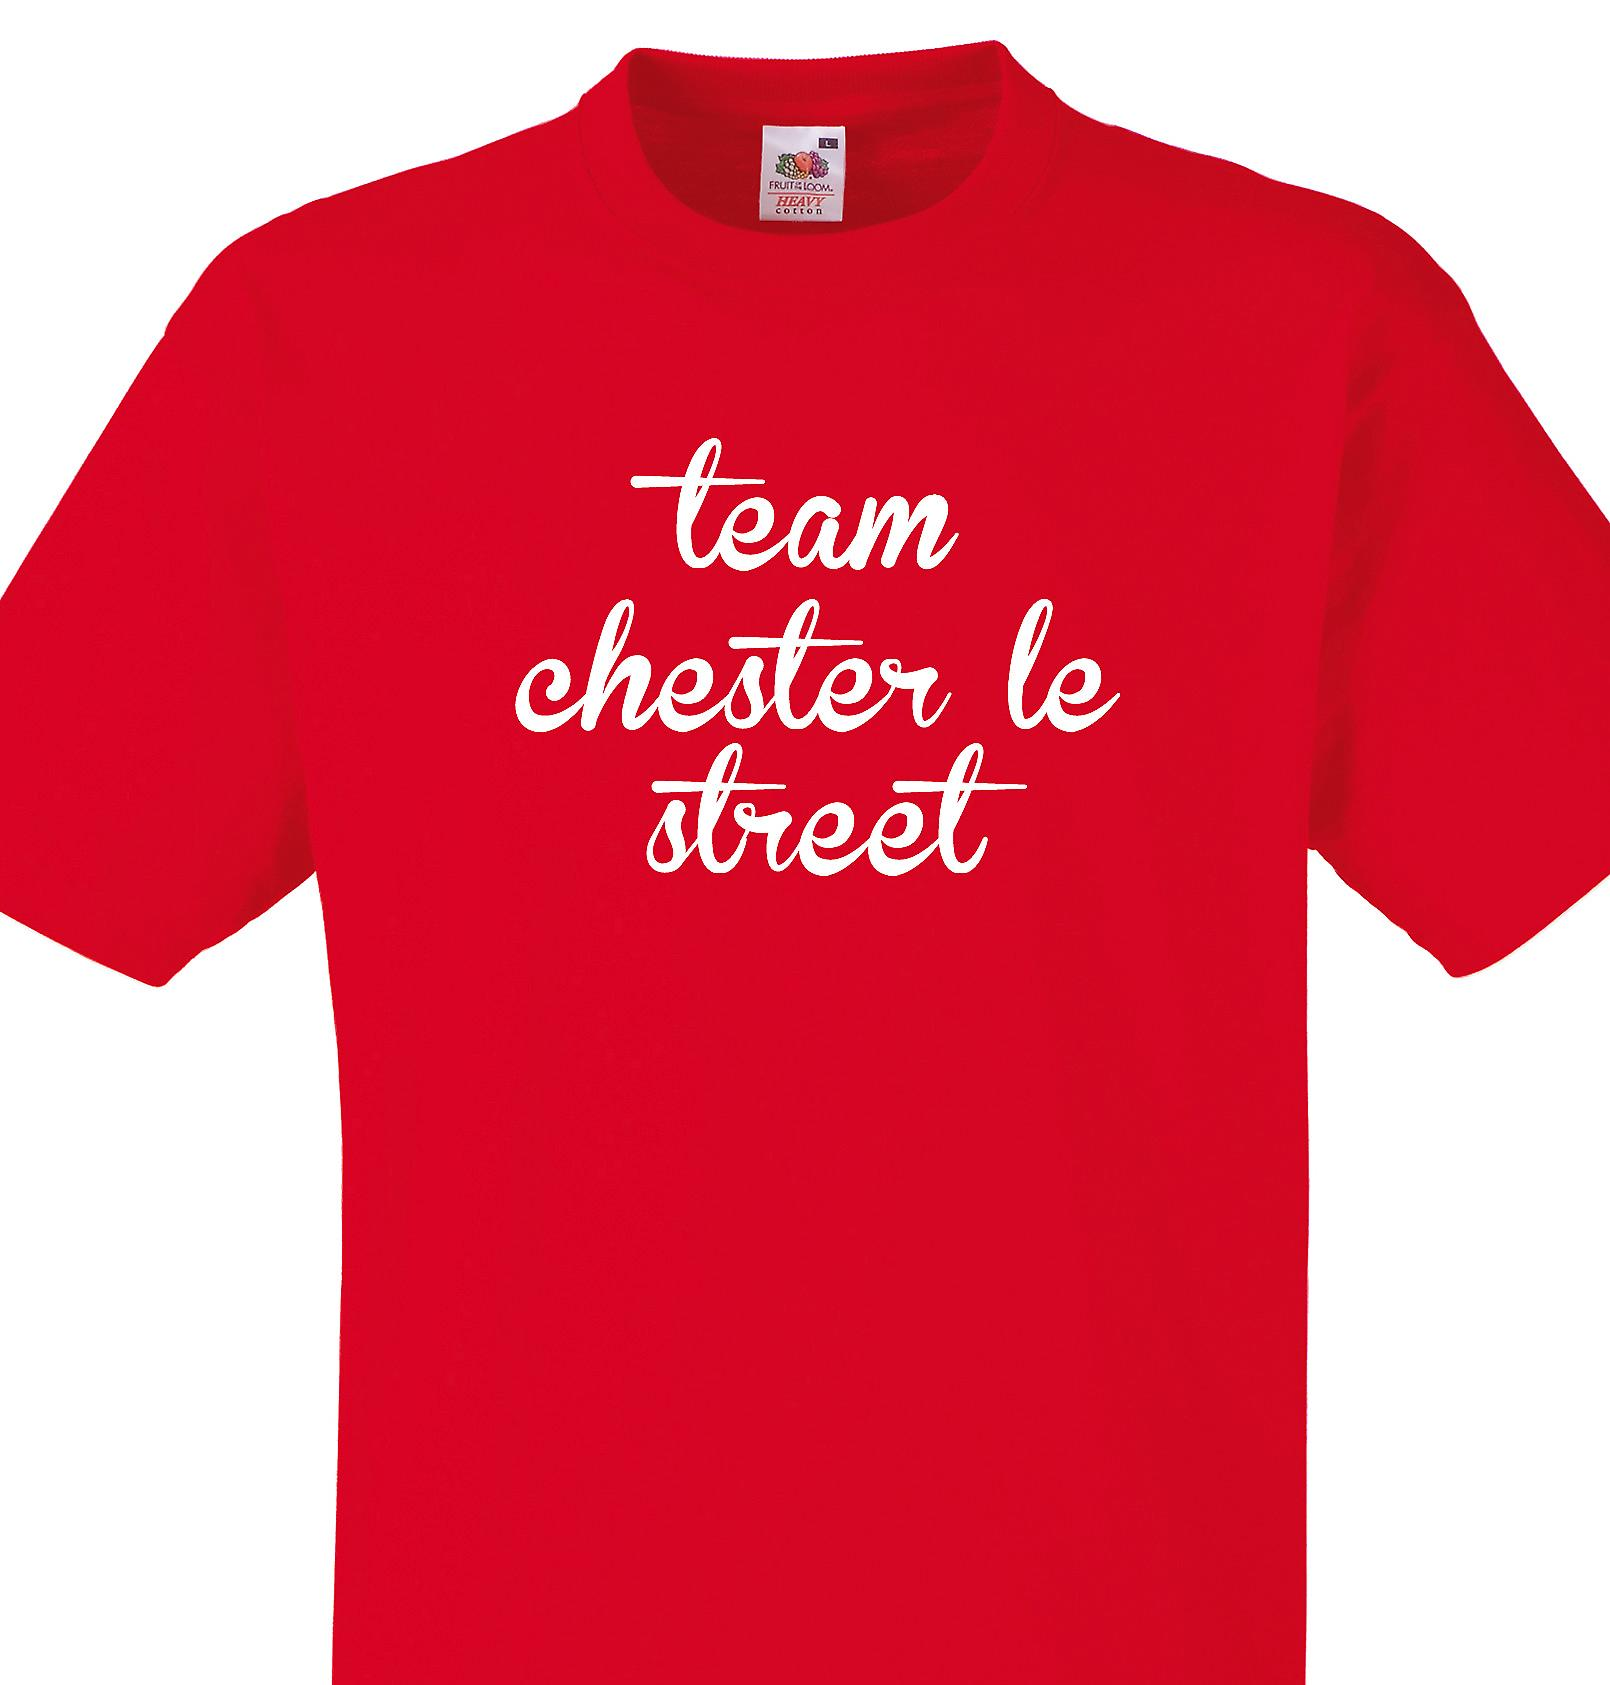 Team Chester le street Red T shirt